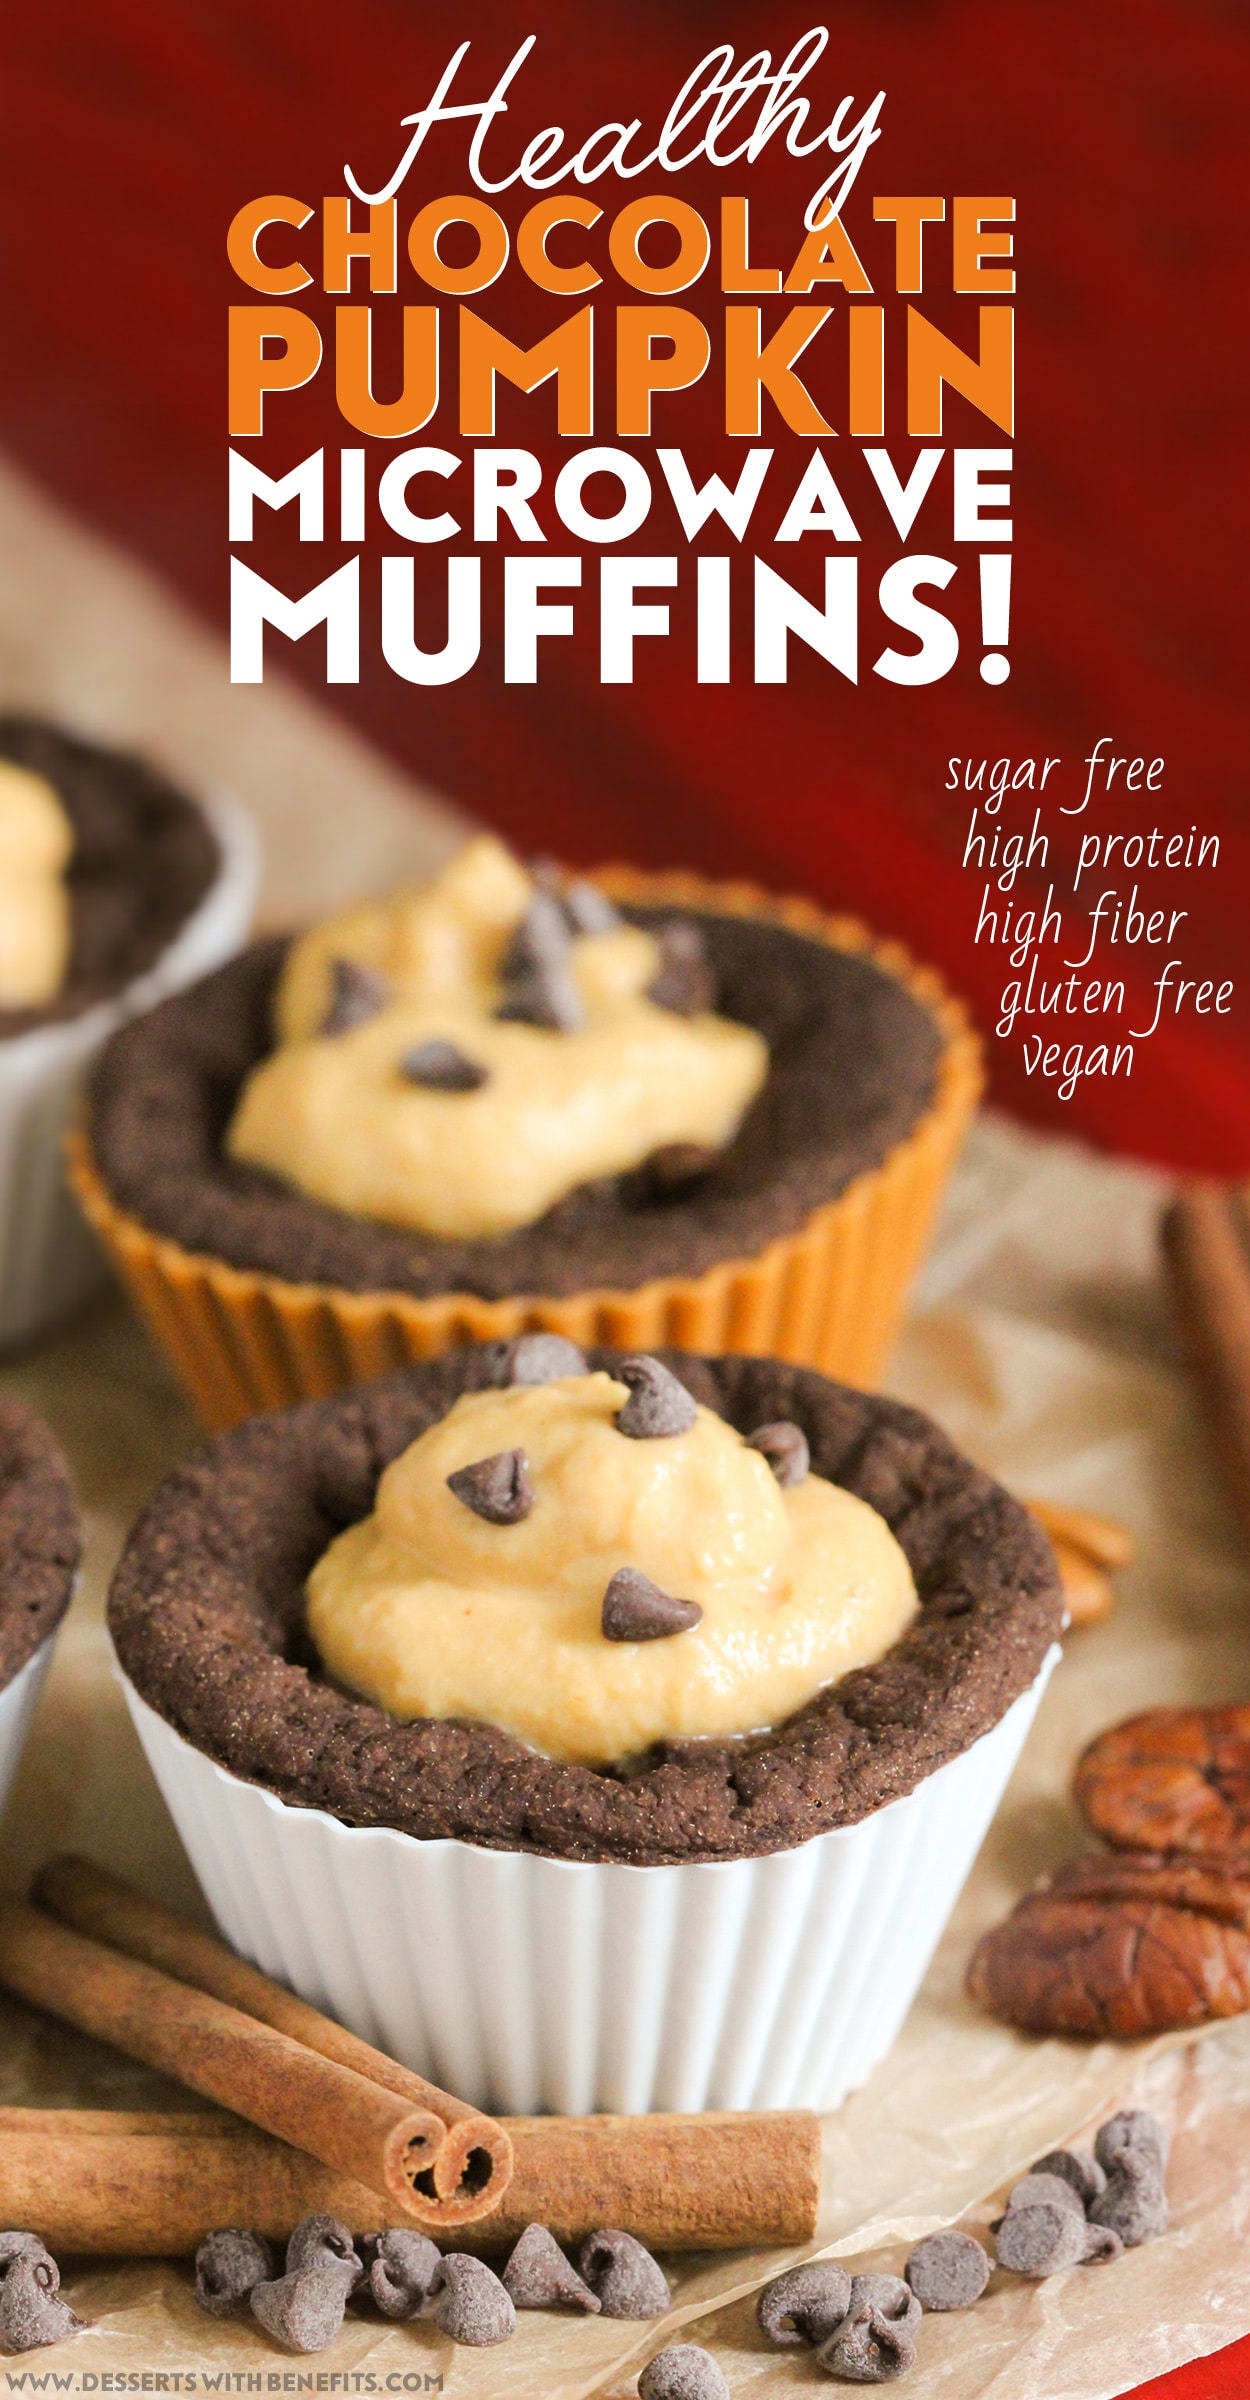 Healthy Chocolate Pumpkin Microwave Muffins (refined sugar free, high protein, high fiber, gluten free, dairy free, vegan) - Healthy Dessert Recipes at Desserts with Benefits